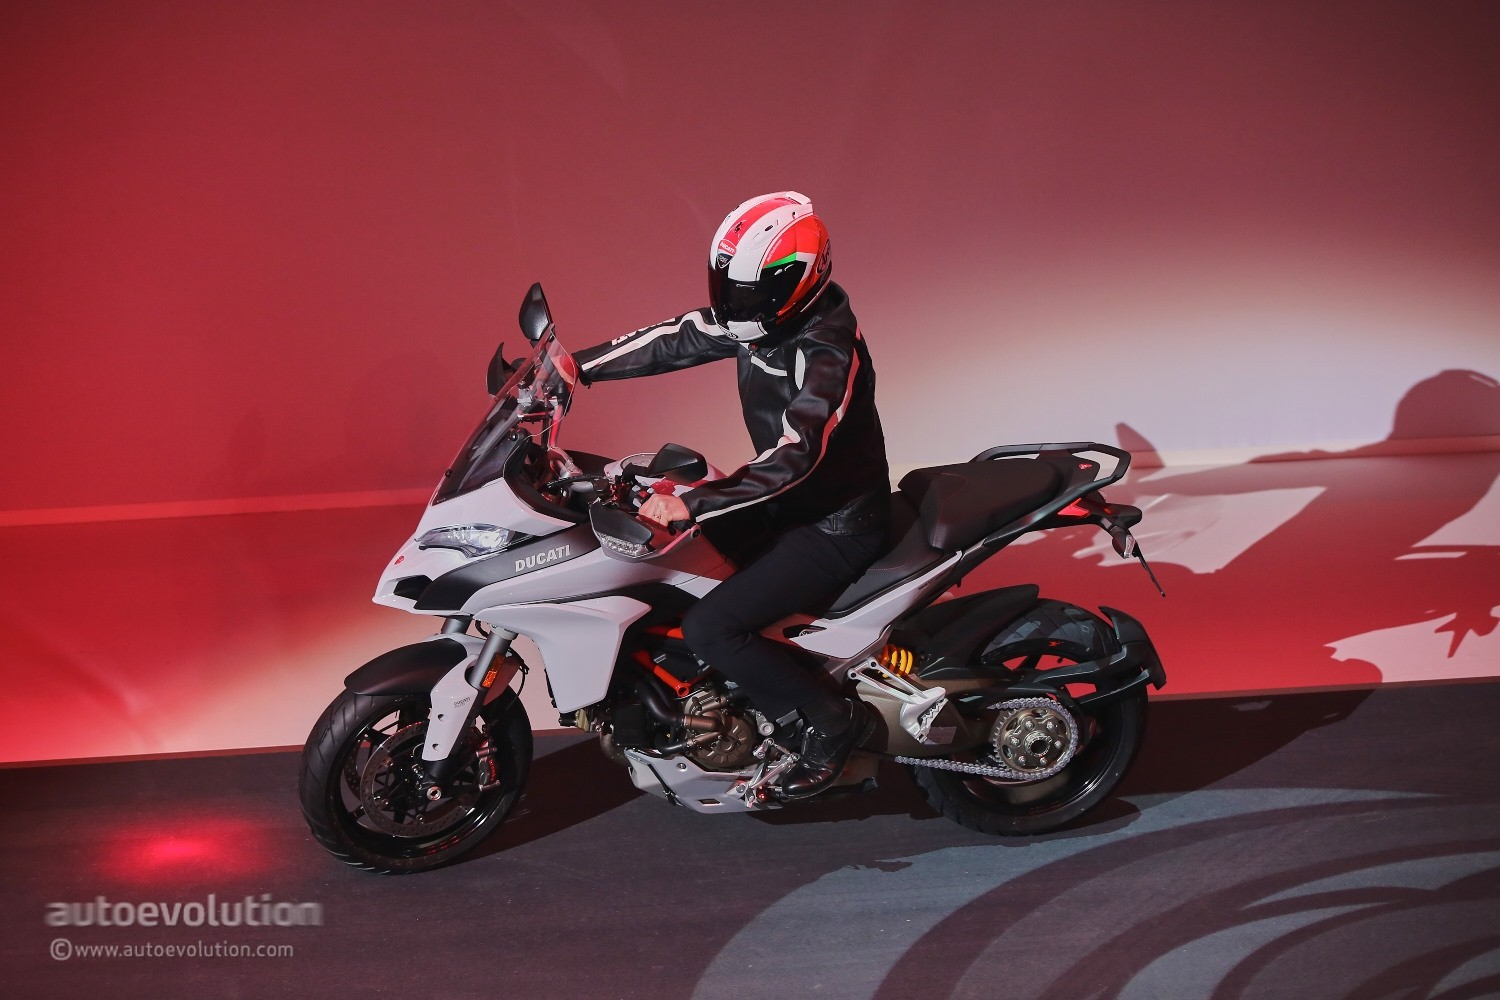 Ducati Multistrada 1200 2015 wallpapers #13191